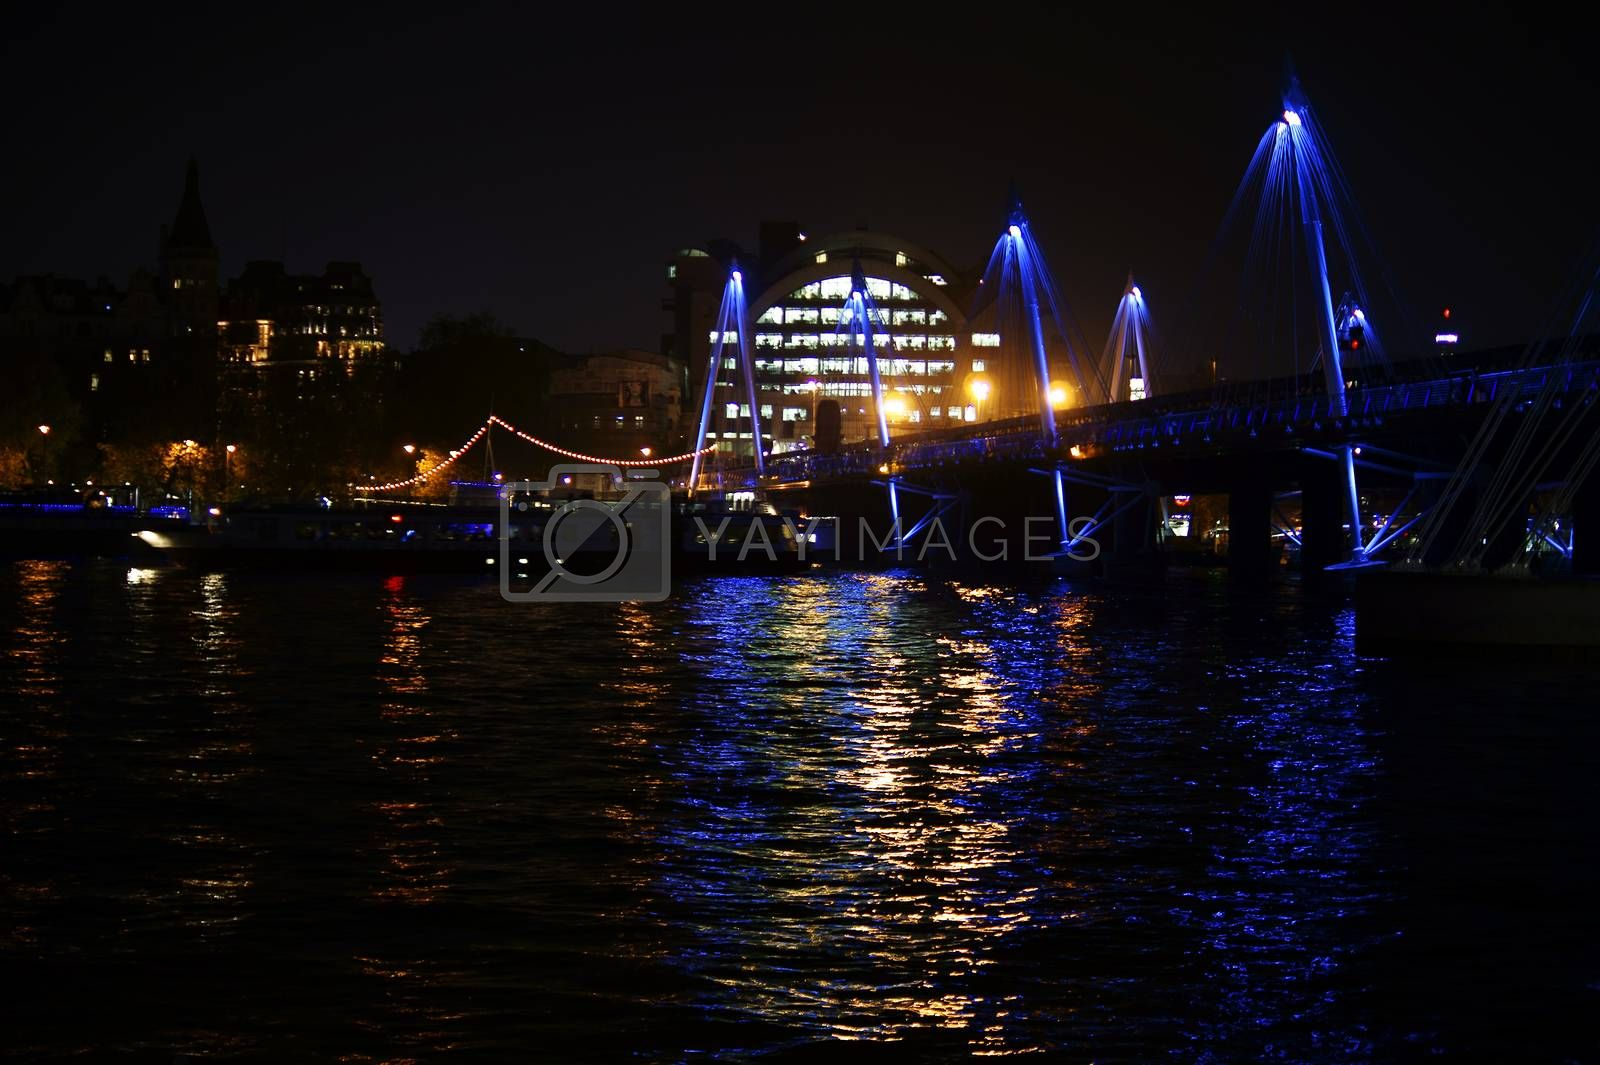 London, UK - November 29, 2014: The nocturnal illuminated Hungerford Bridge over the River Thames with the Charing Cross railway station on 29 November 2014 in London.